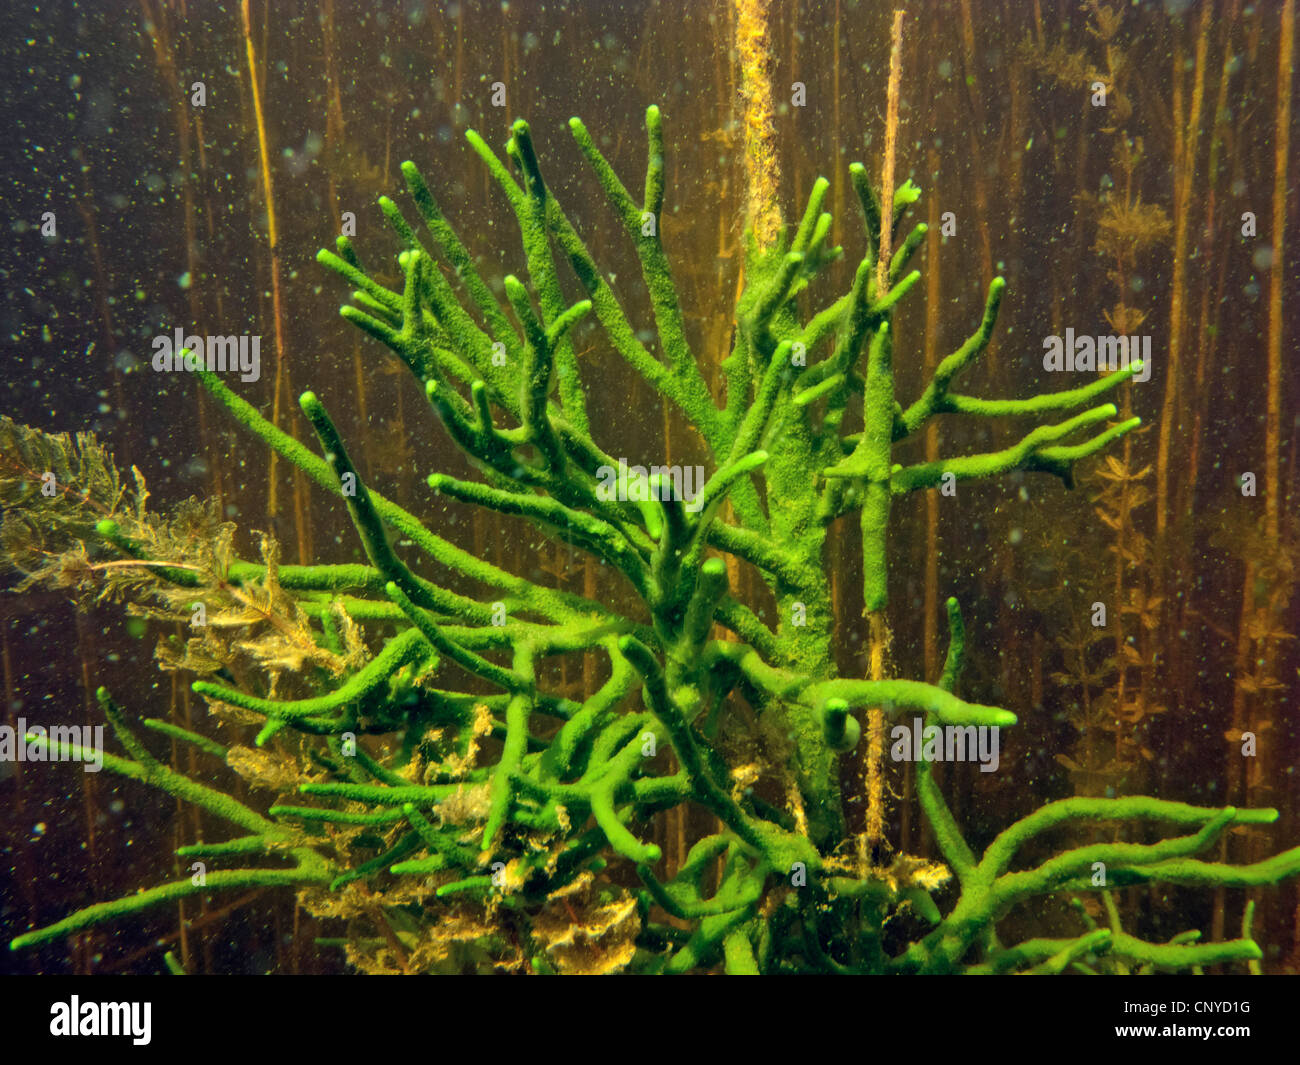 Spongilla lacustris (Spongilla lacustris), section of a large exemplar more than 1 m high, Germany, Bavaria, Staffelsee Stock Photo